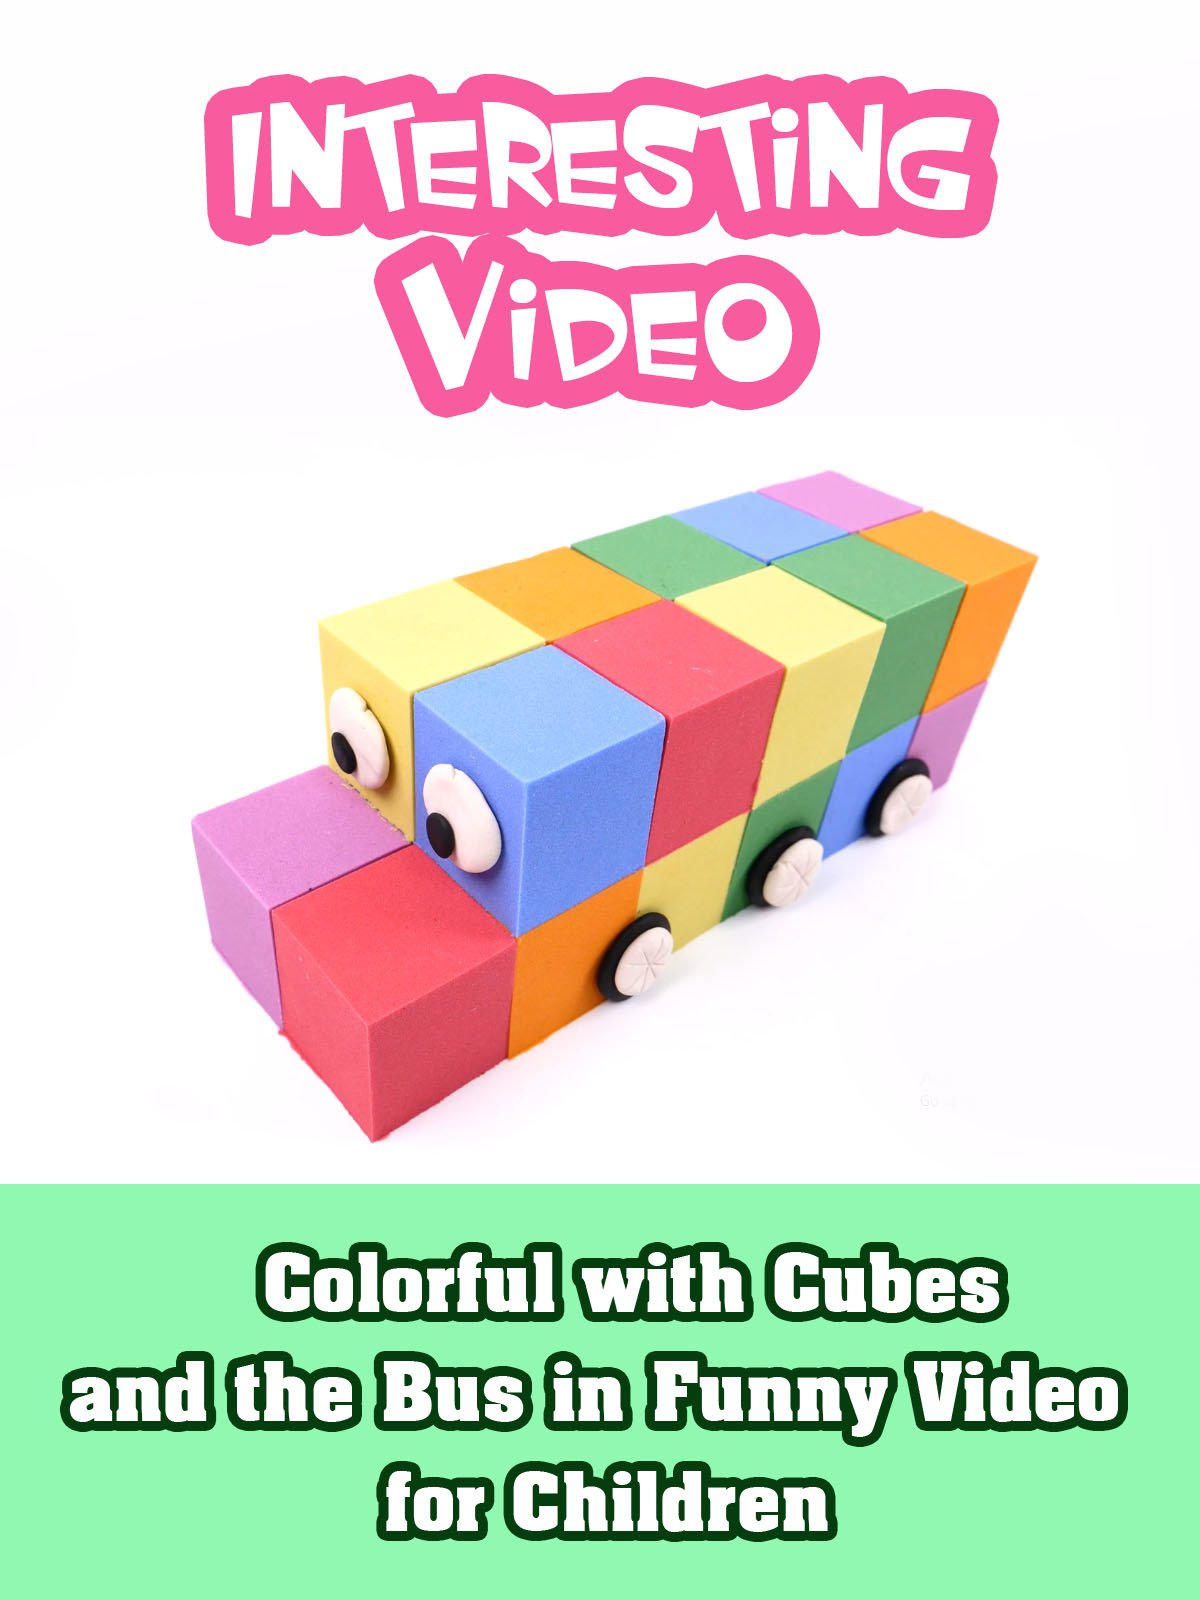 Colorful with Cubes and the Bus in Funny Video for Children